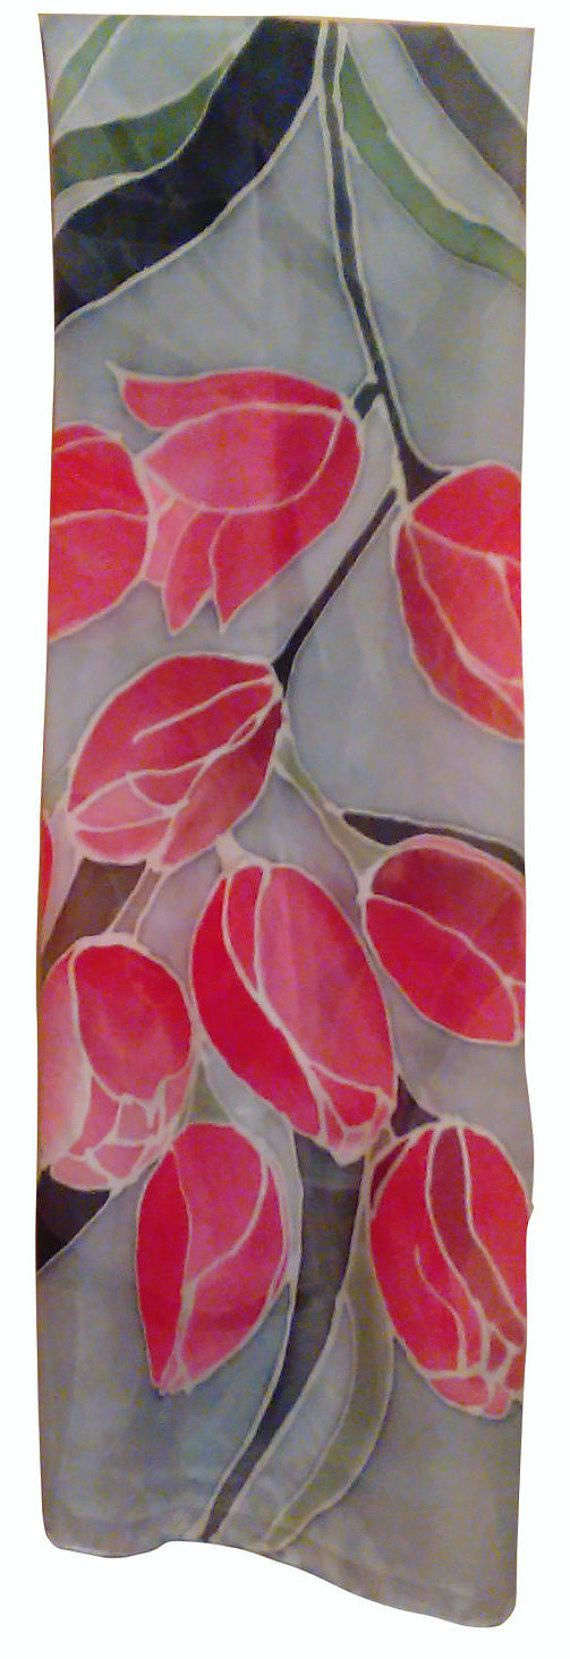 Hand Painted Silk Scarf Tulips 140 x 40 cm 55 x 155